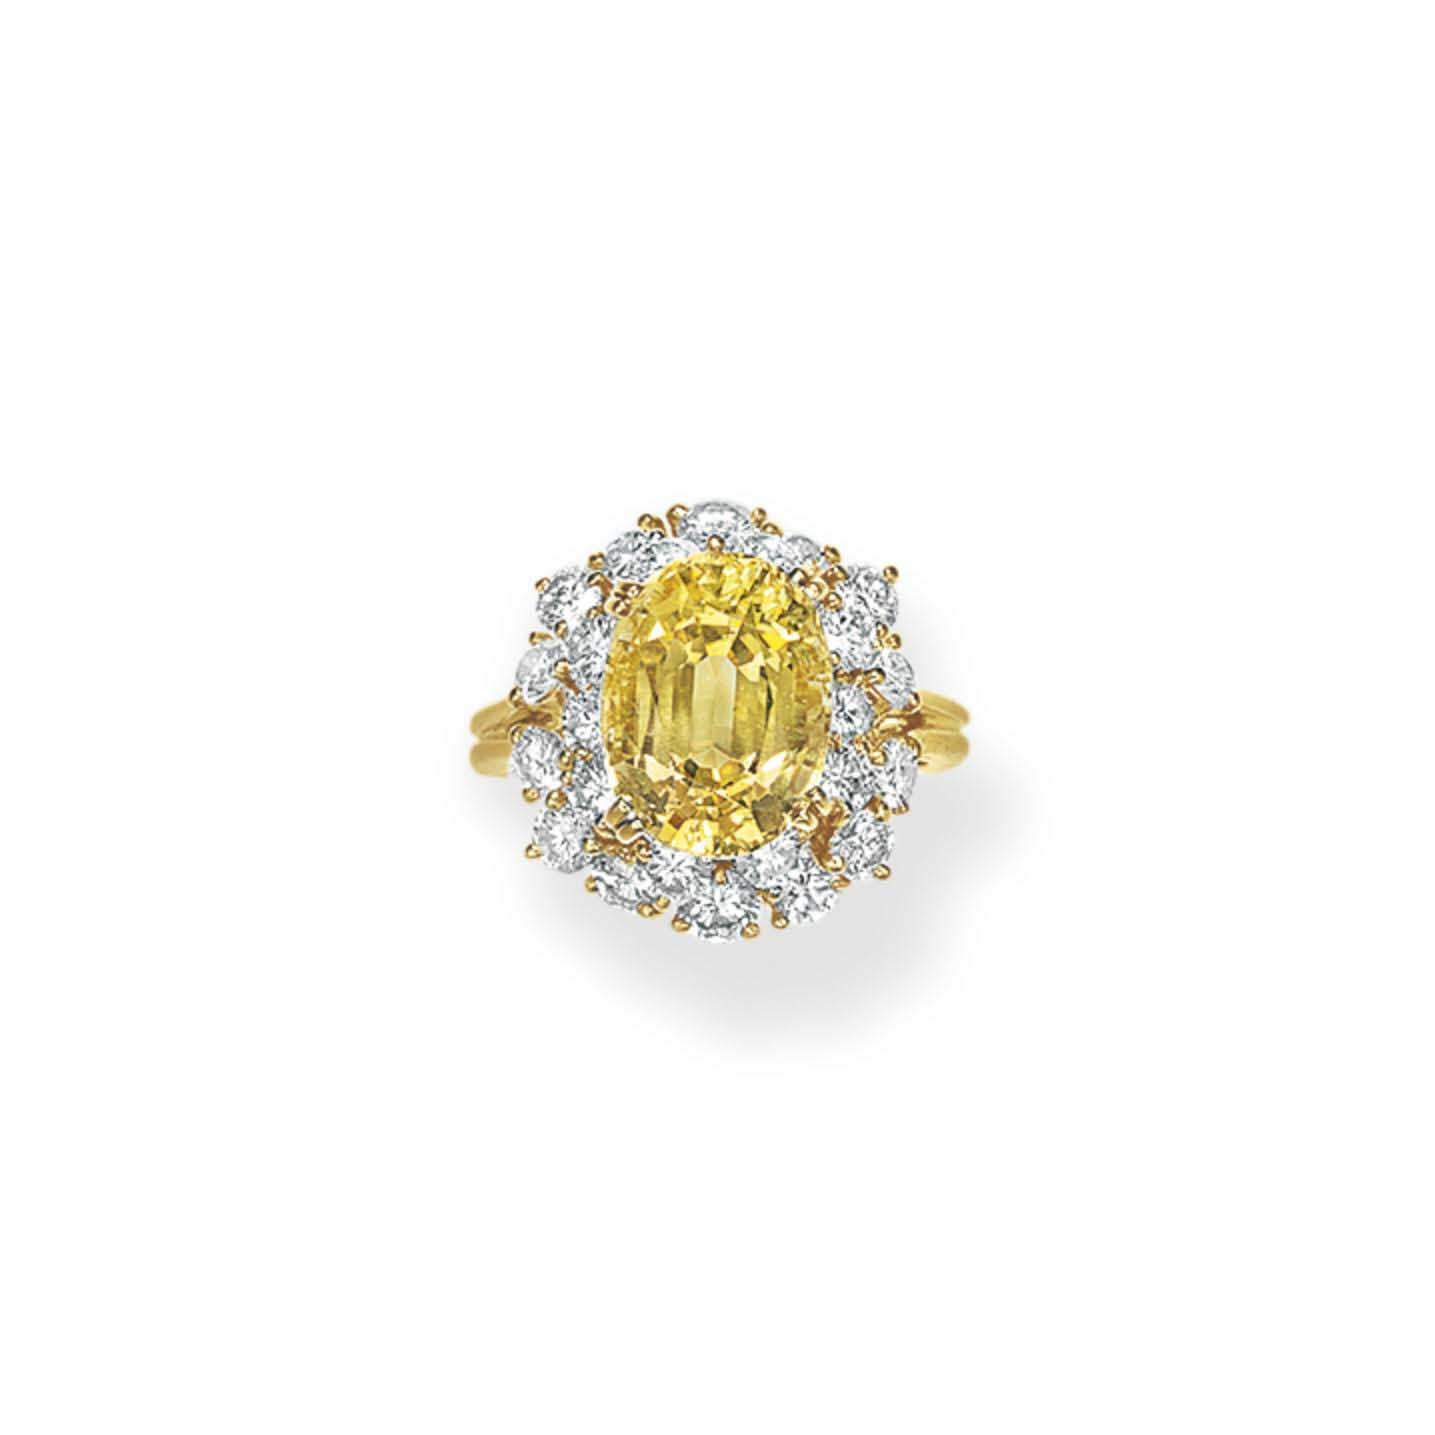 A YELLOW SAPPHIRE AND DIAMOND RING, BY JULIUS COHEN